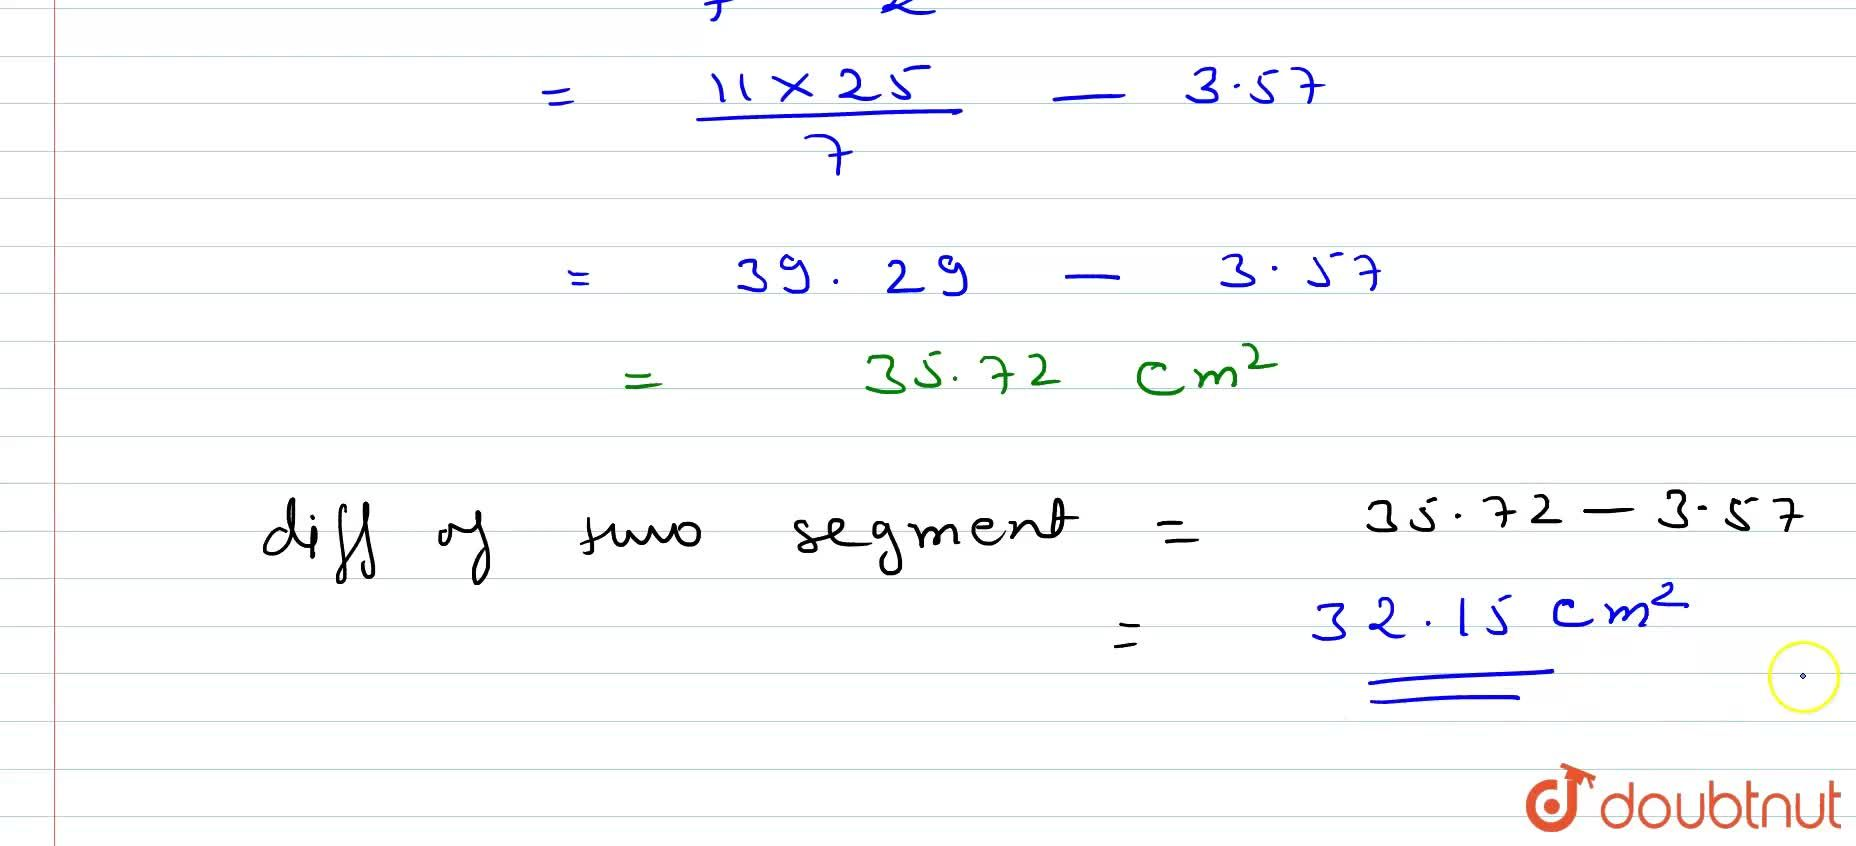 Find the differnce of the areas of two segments of a circle formed by a chord of length 5cm subtending an angle of 90^(@) at the centre.